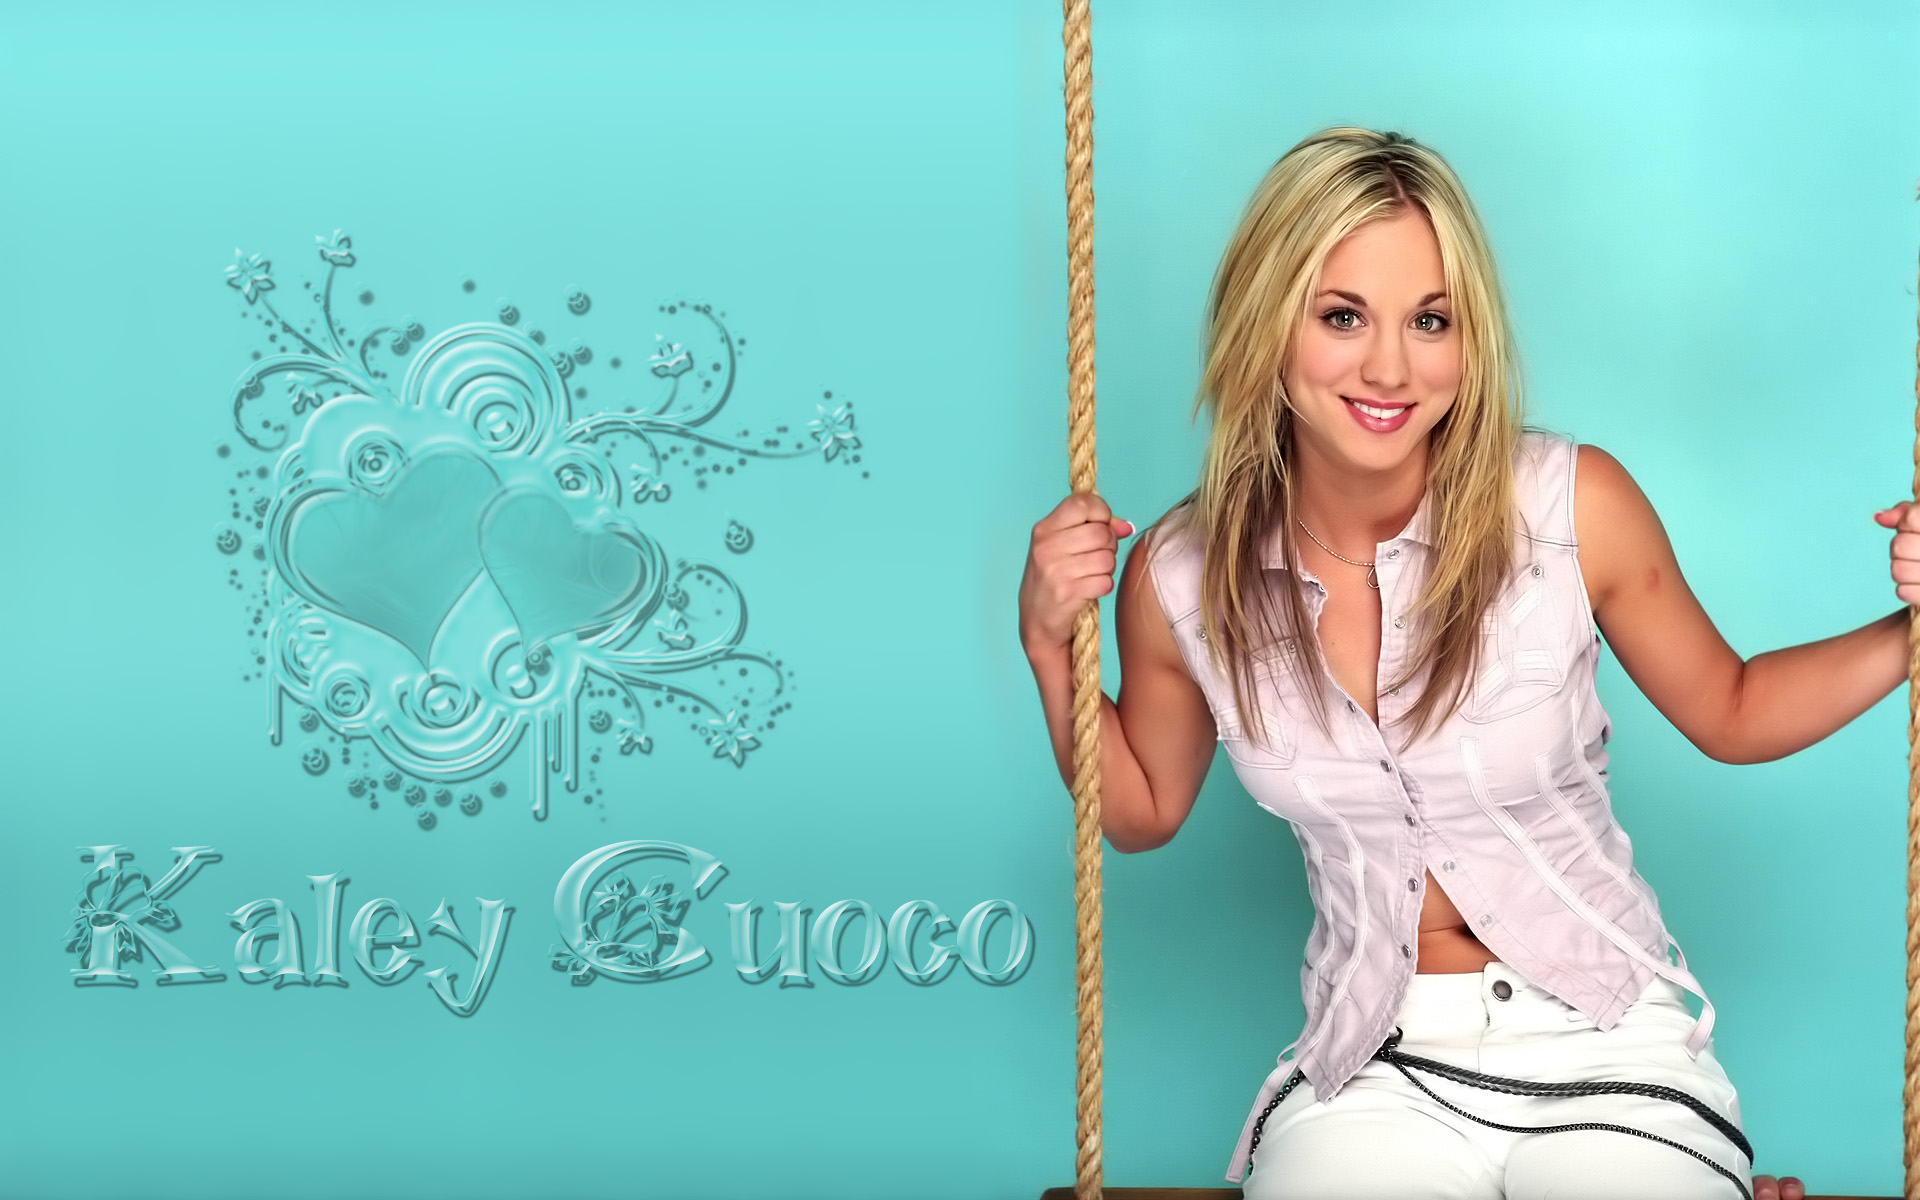 1920x1200 - Kaley Cuoco Wallpapers 34